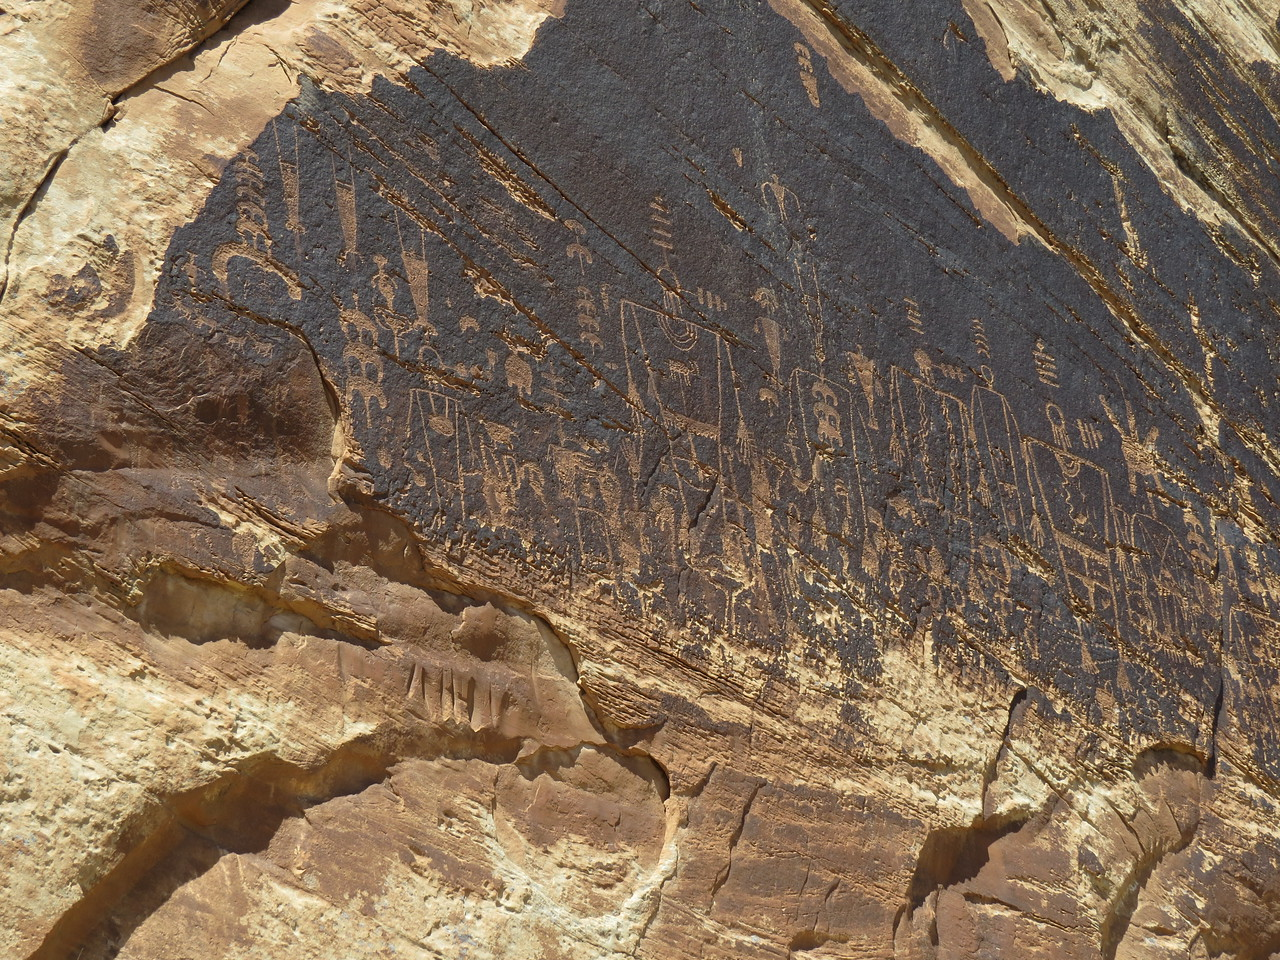 The San Juan has lots of petroglyphs and Anasazi ruins. Some of the best are near Butler Wash at Mile 4.2.